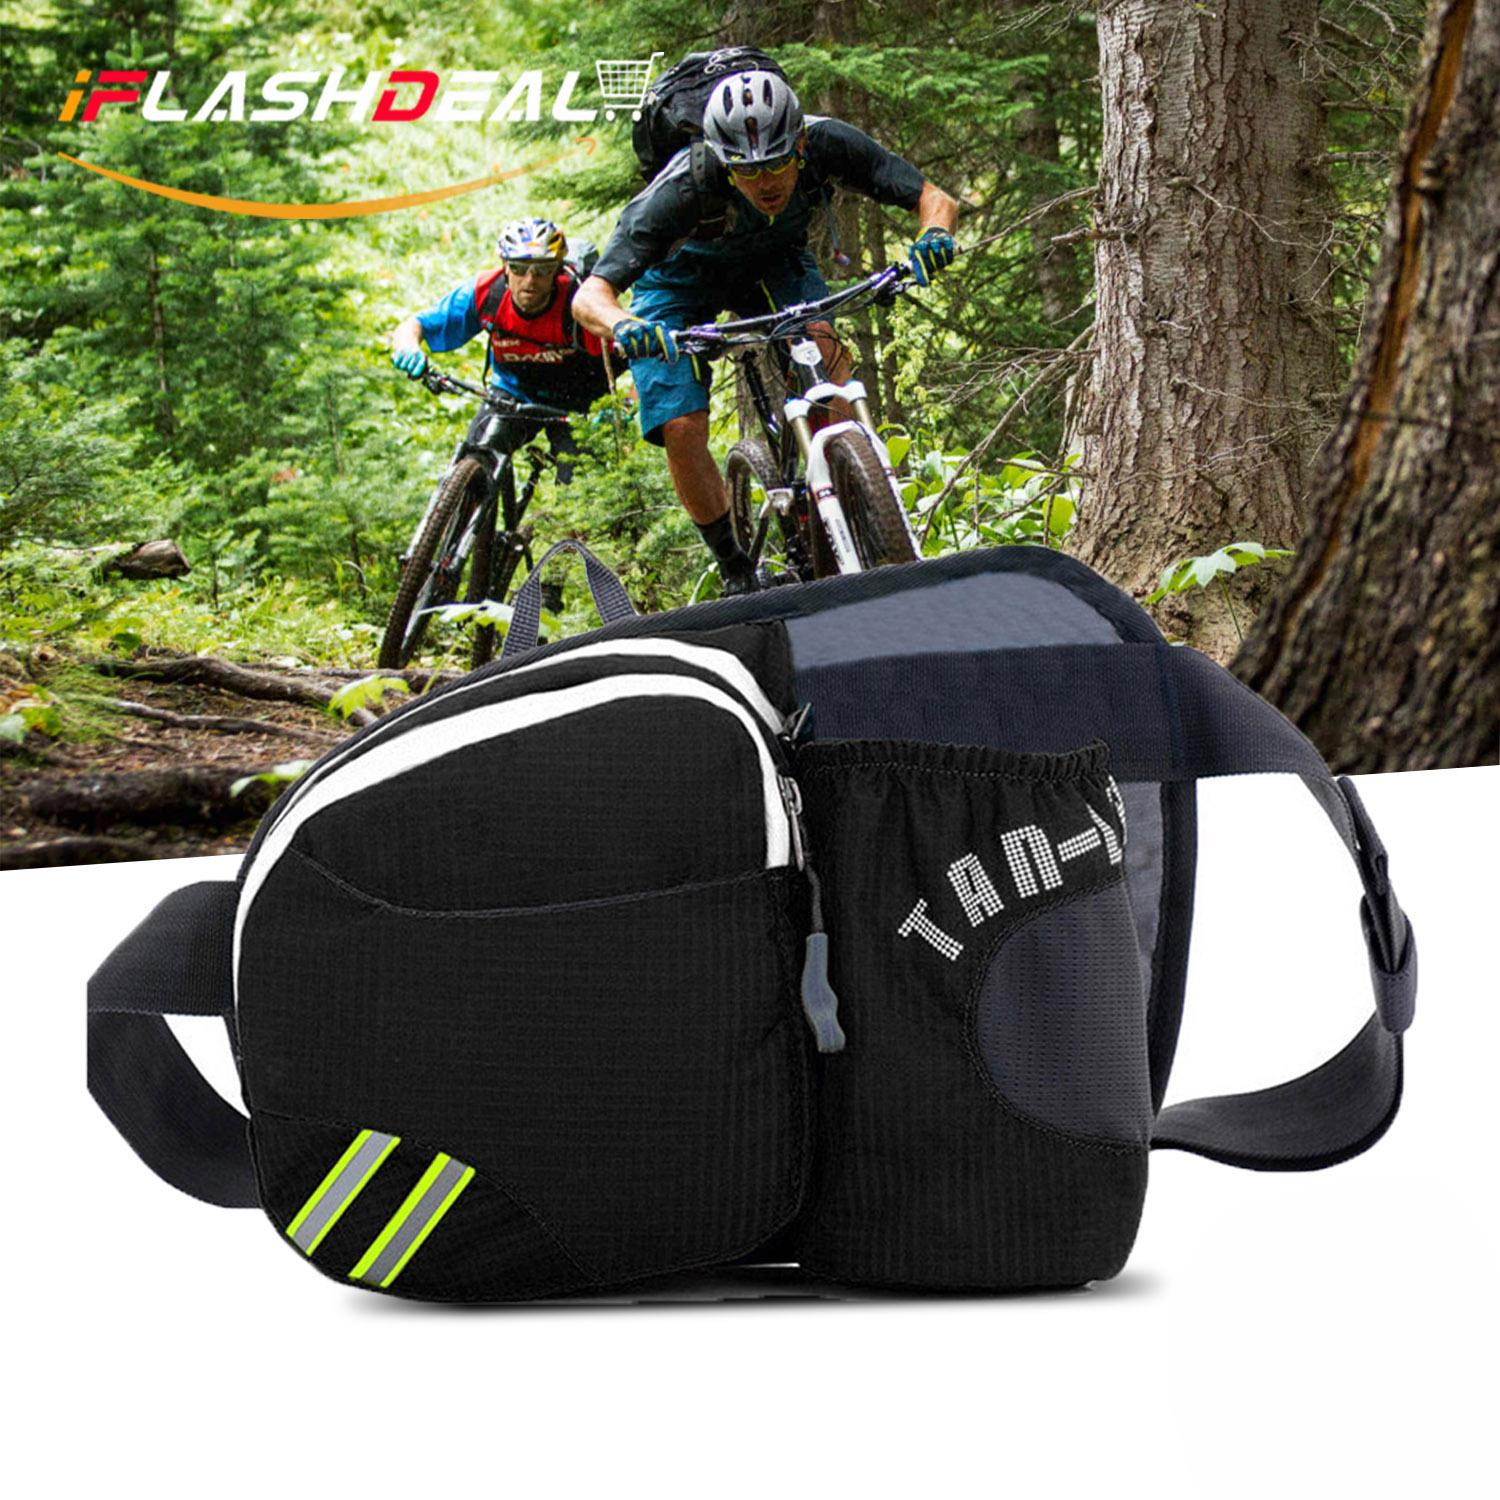 iFlashDeal Waist Pack Portable Fanny Pack Outdoor Hiking Cycling Travel Sport Waist Bag